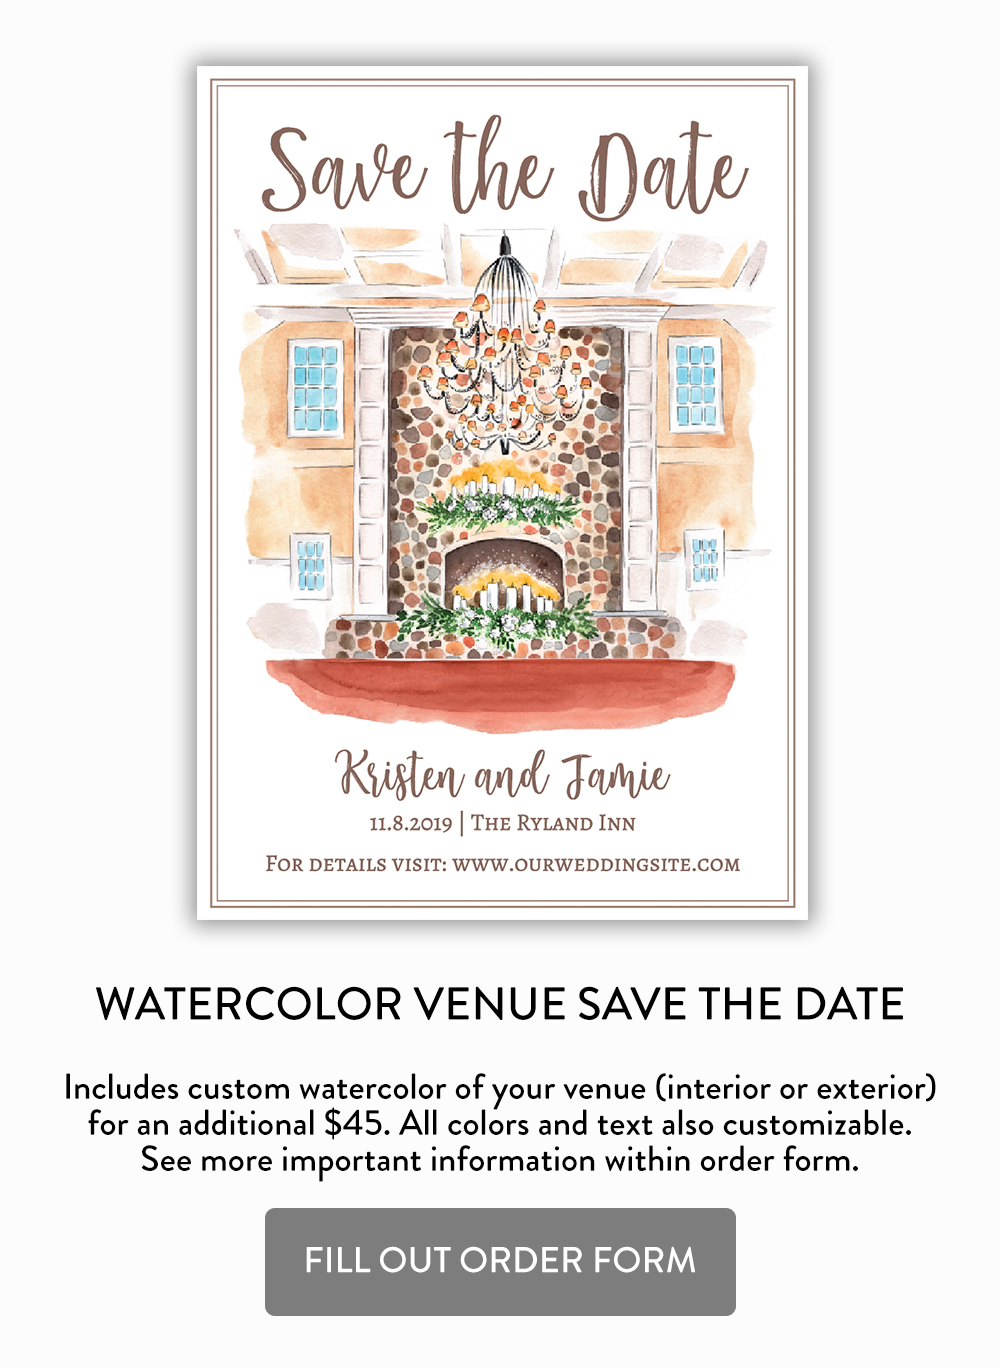 WatercolorVenue_SavetheDate.jpg